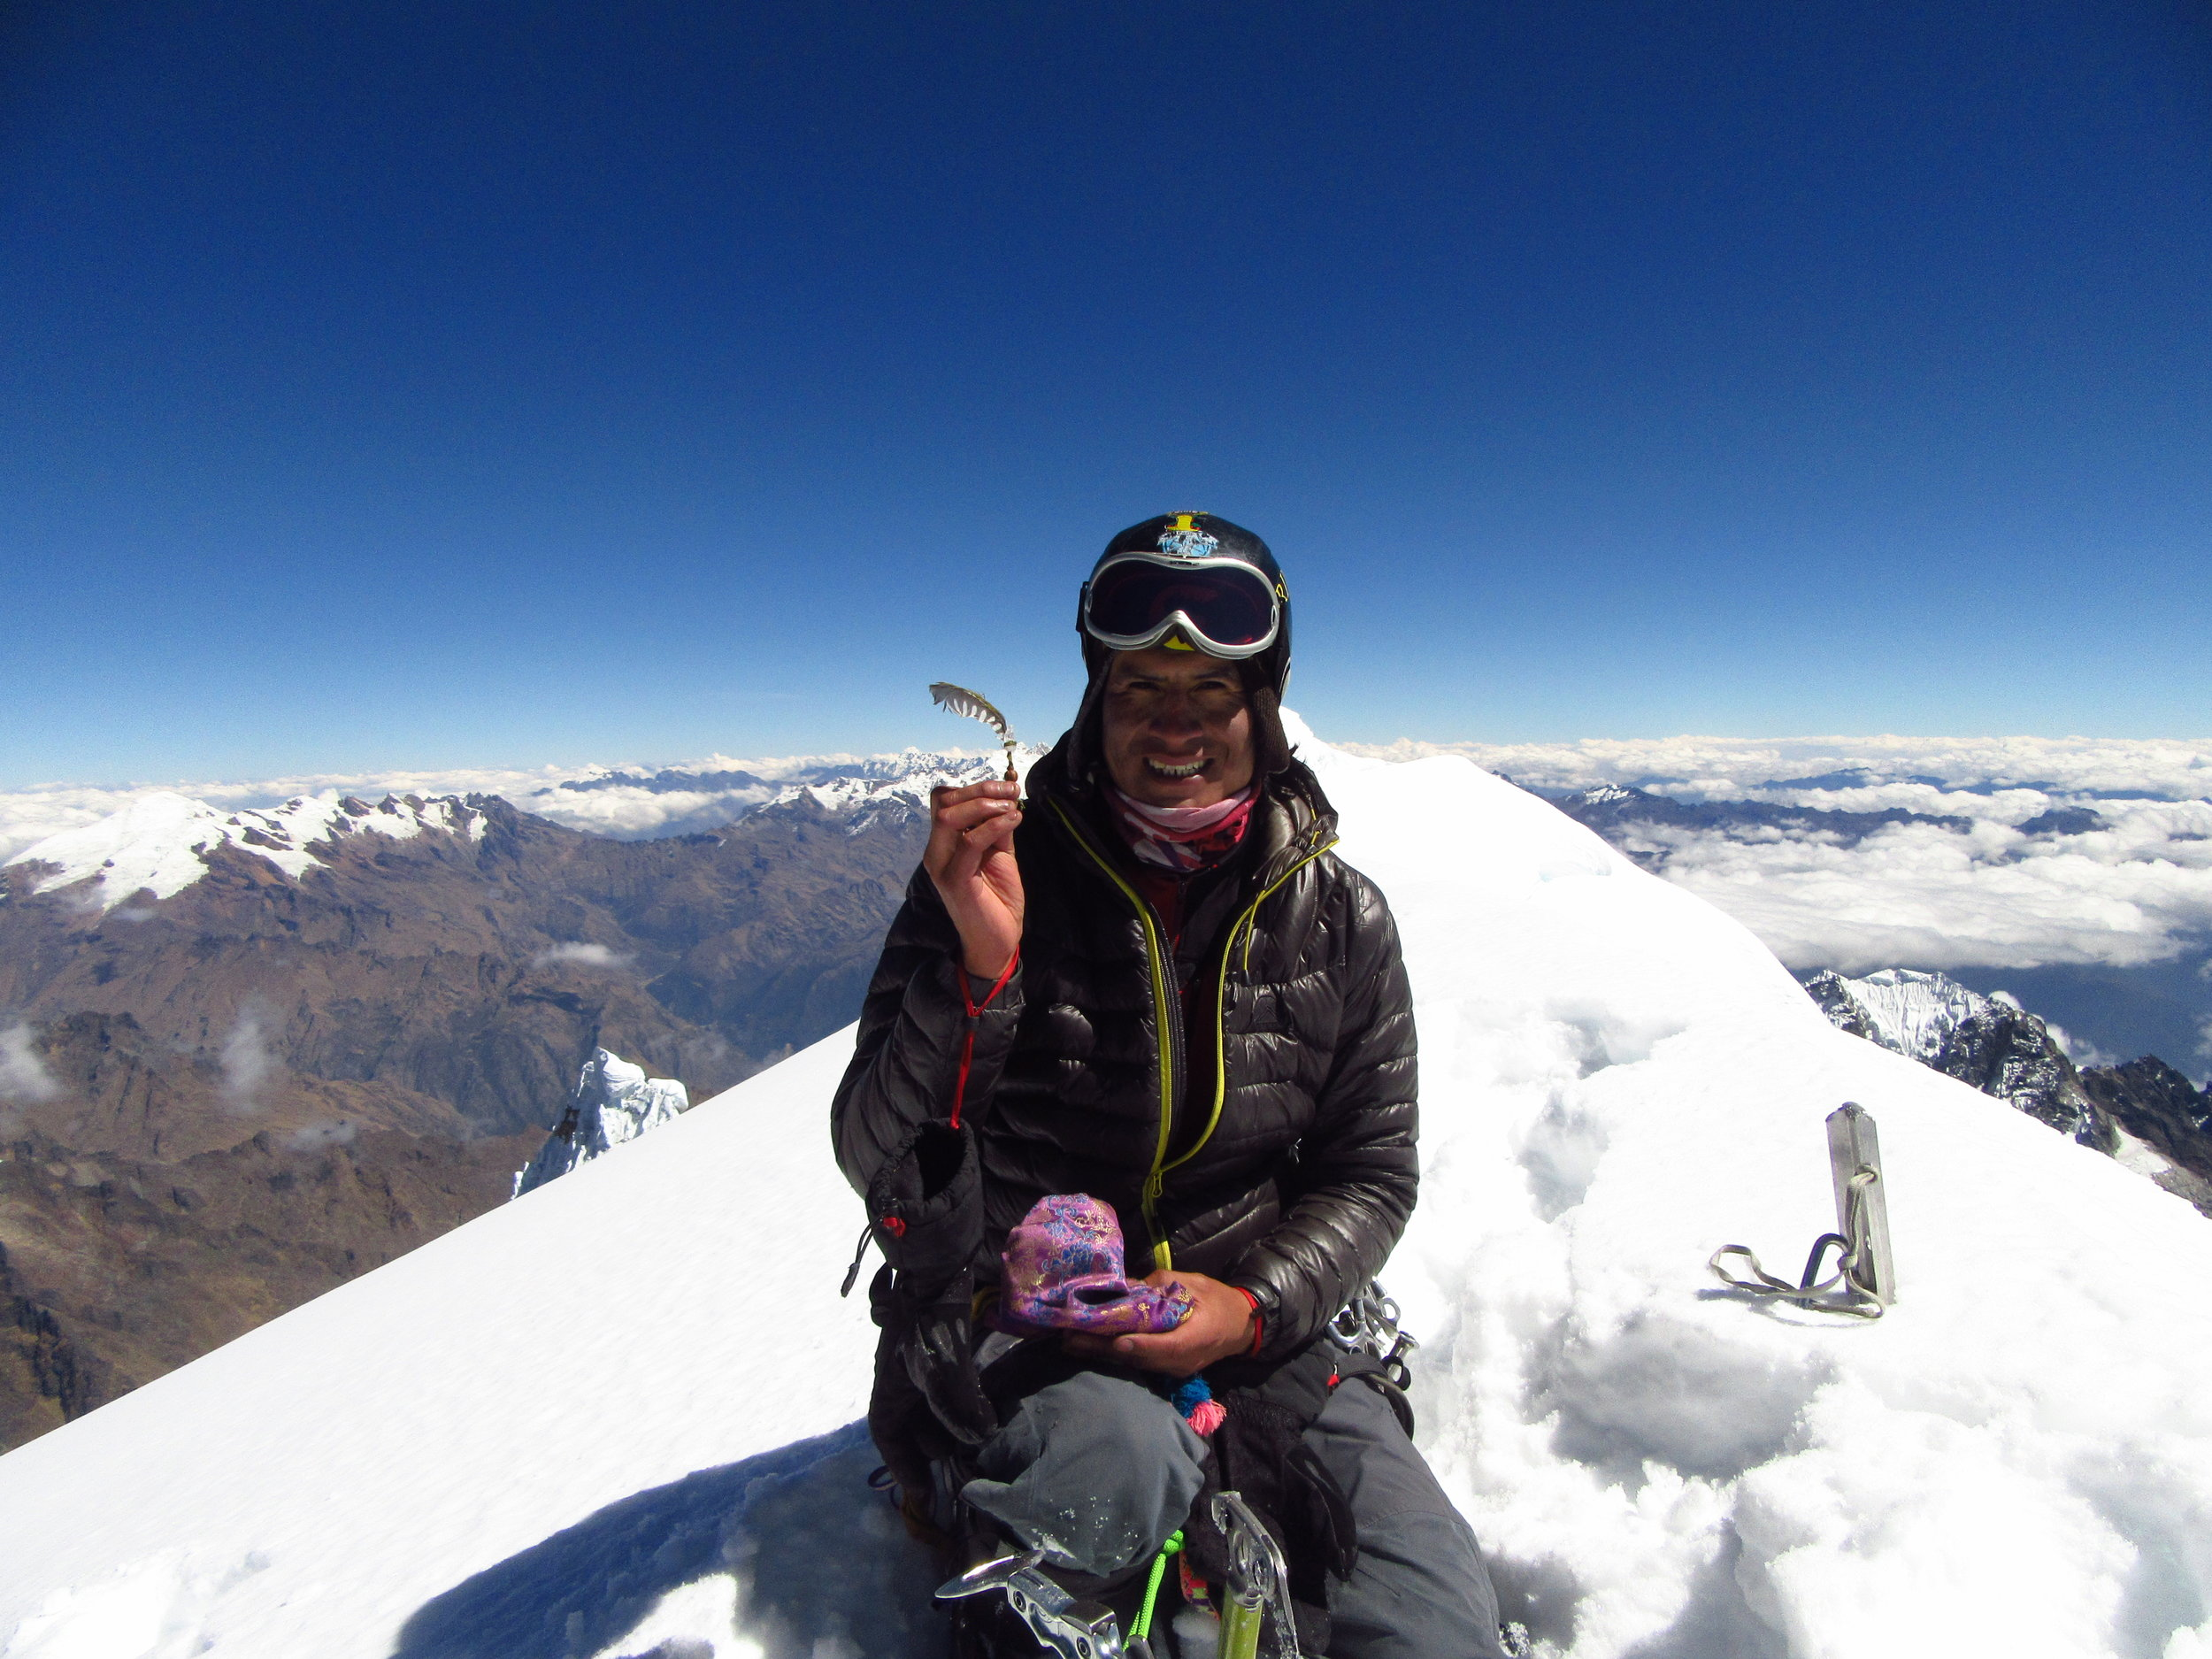 Marco Jurado - IFMGA (UIAGM) certified mountain guide from Huancayo, Peru. Marco loves climbing and hiking in the Cusco region. I took this photo of him on the summit of Salkantay.